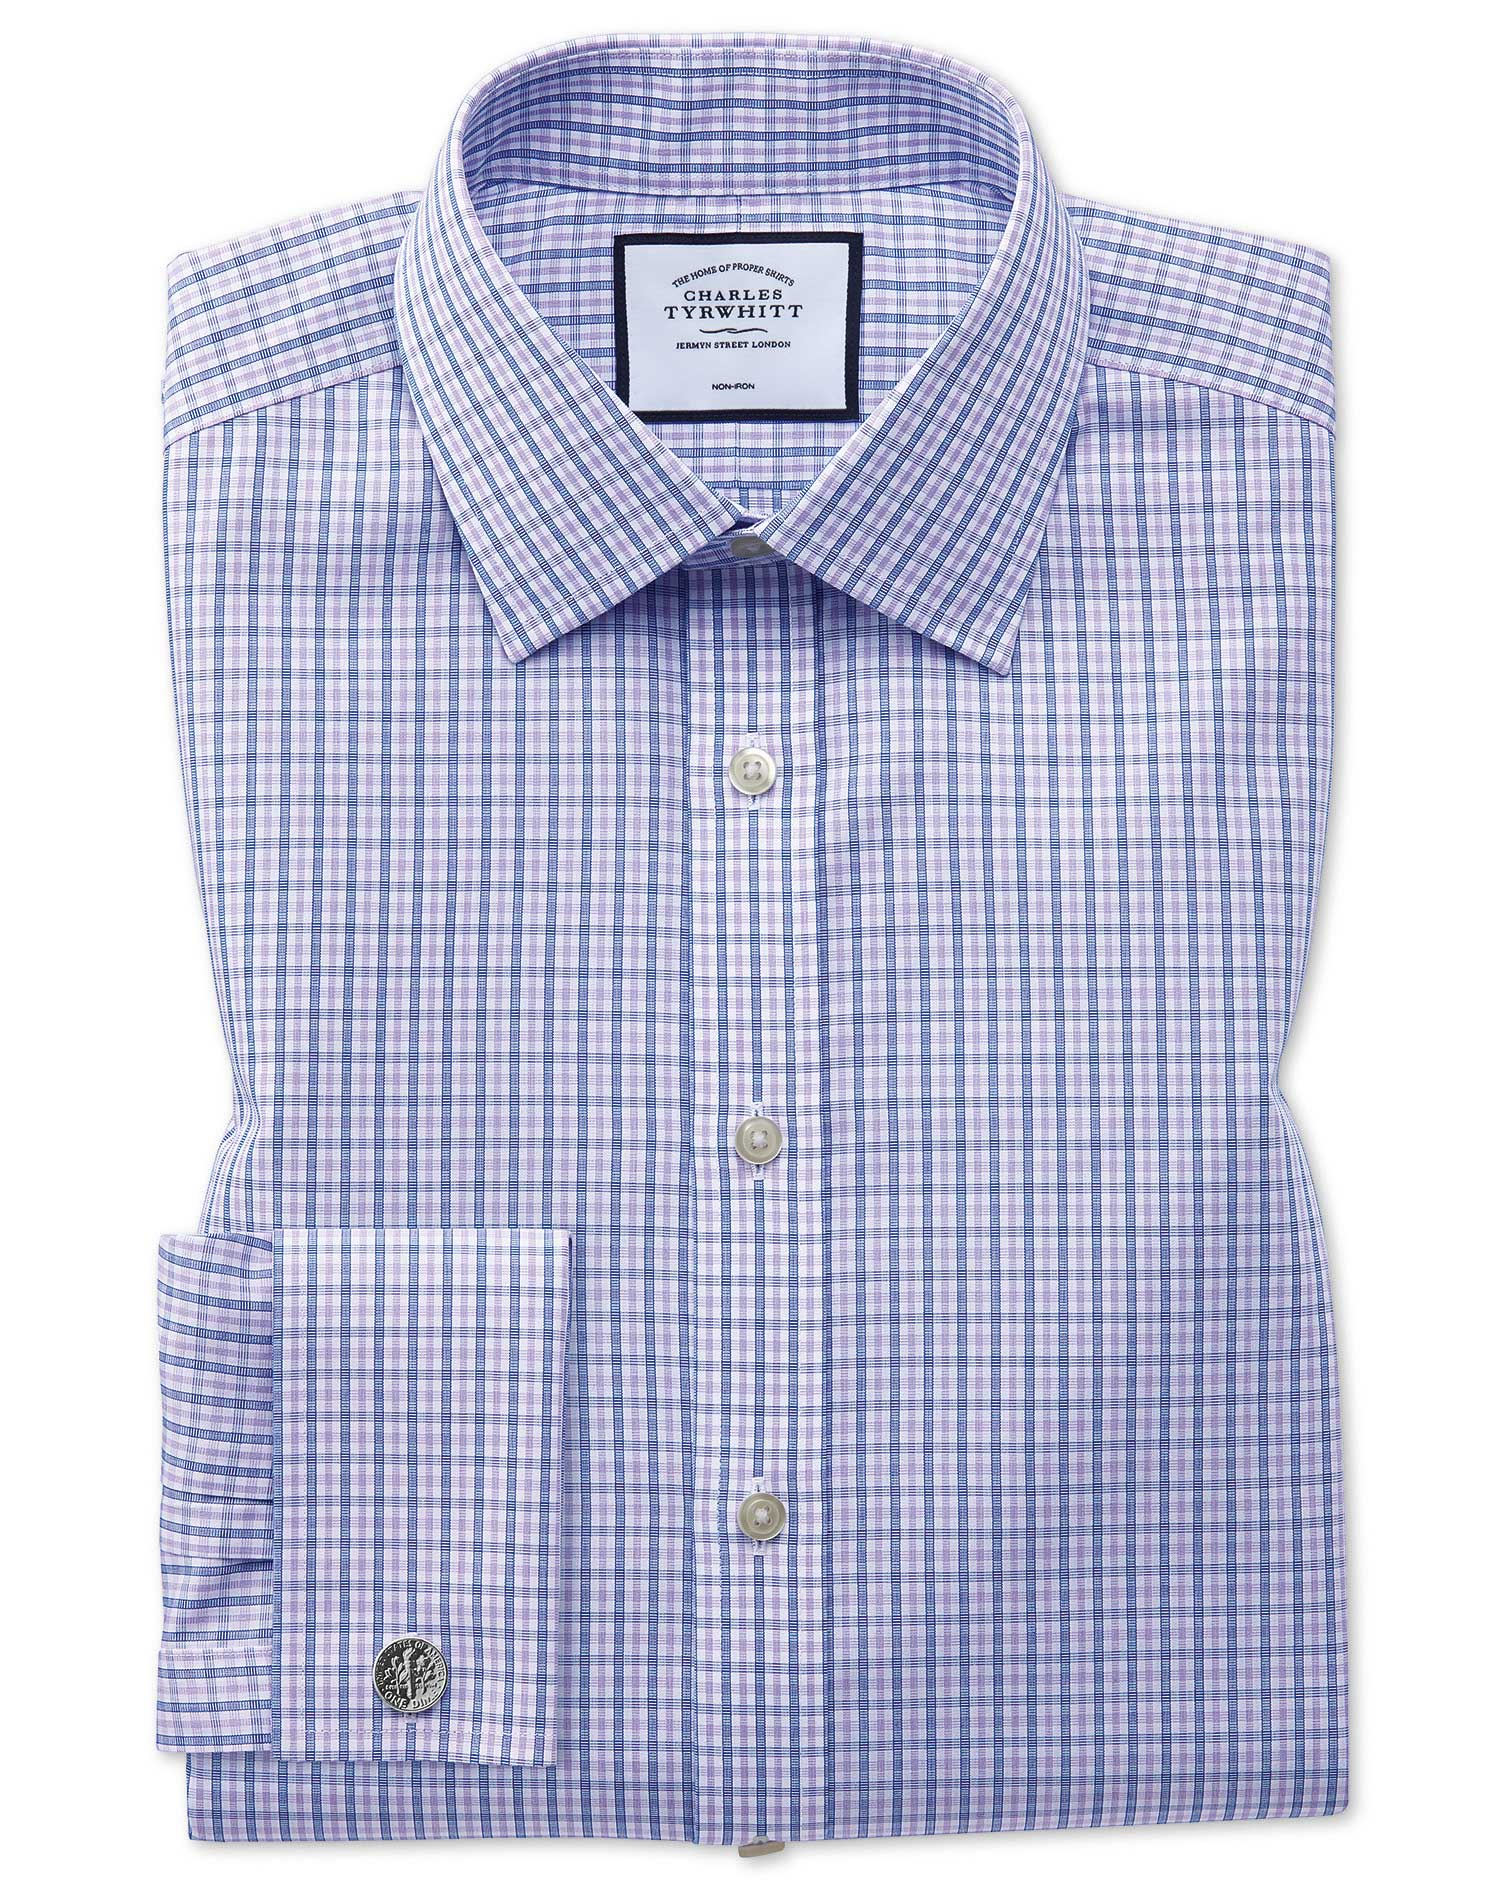 Slim Fit Non-Iron Blue and Purple Check Cotton Formal Shirt Double Cuff Size 16.5/36 by Charles Tyrw